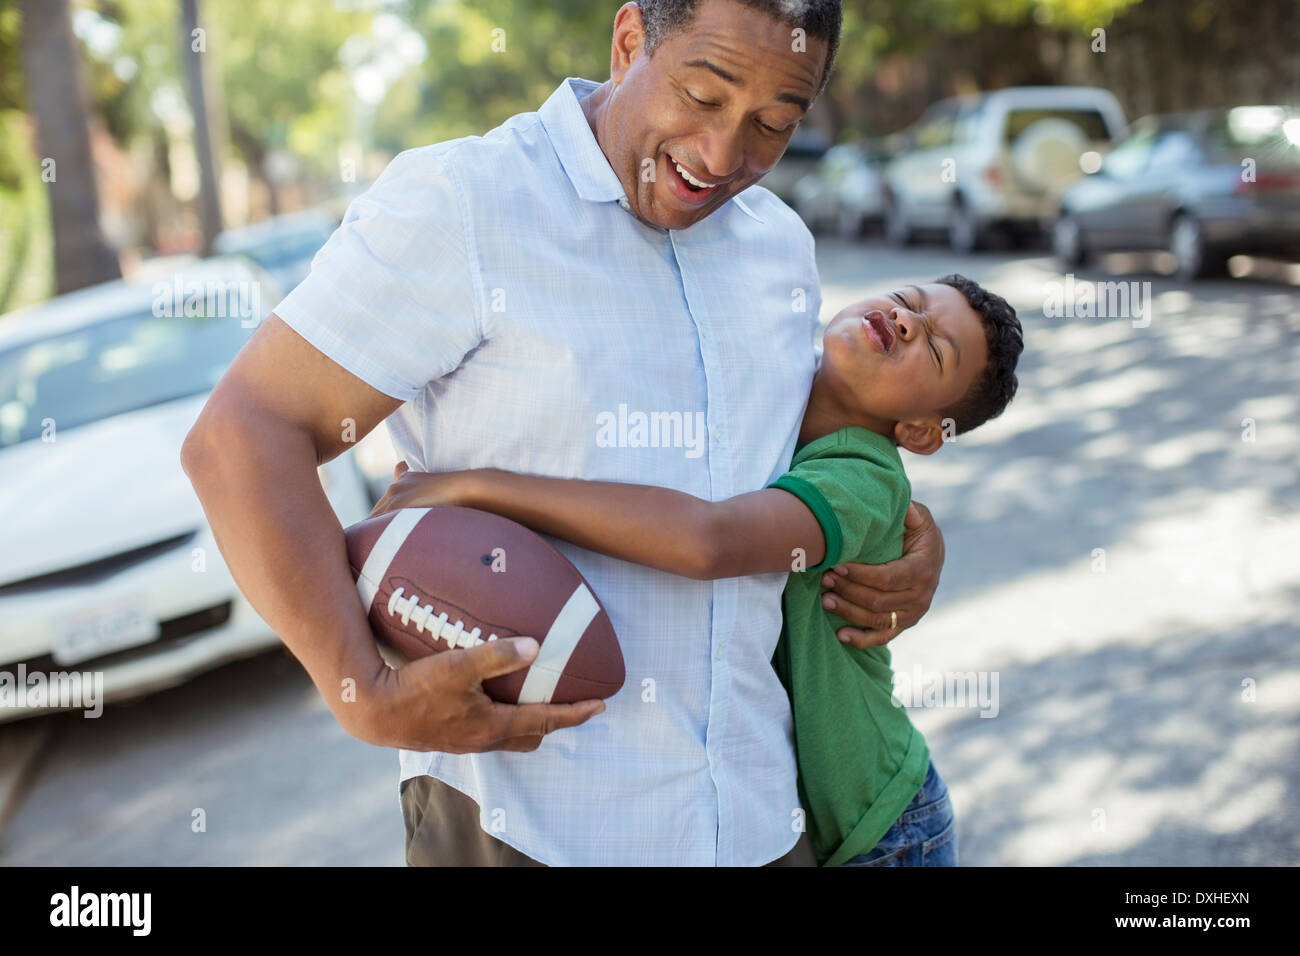 Grandson tackling grandfather with football - Stock Image